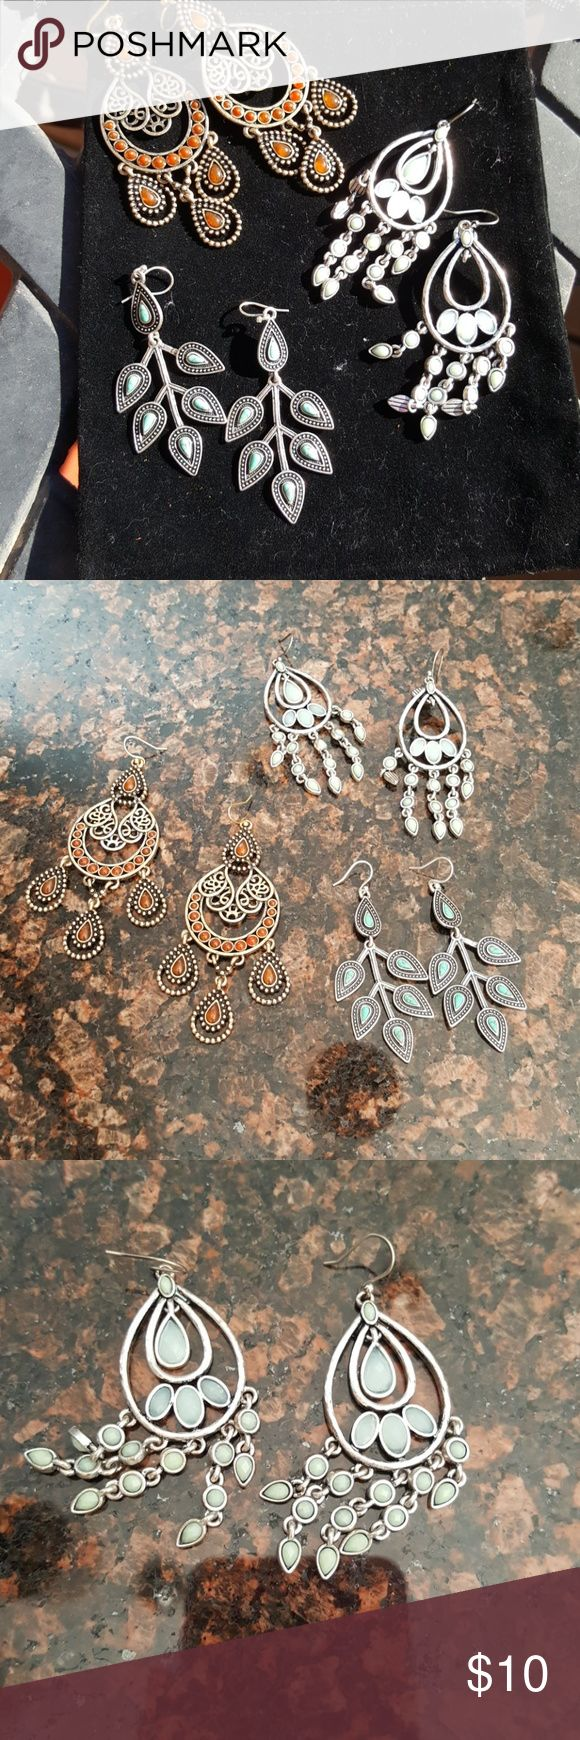 Lucky Brand earrings 2 pair. 2 silver 1 bronze. 3 for $10 The stones are a light blue in the silver dangles Lucky Brand Jewelry Earrings